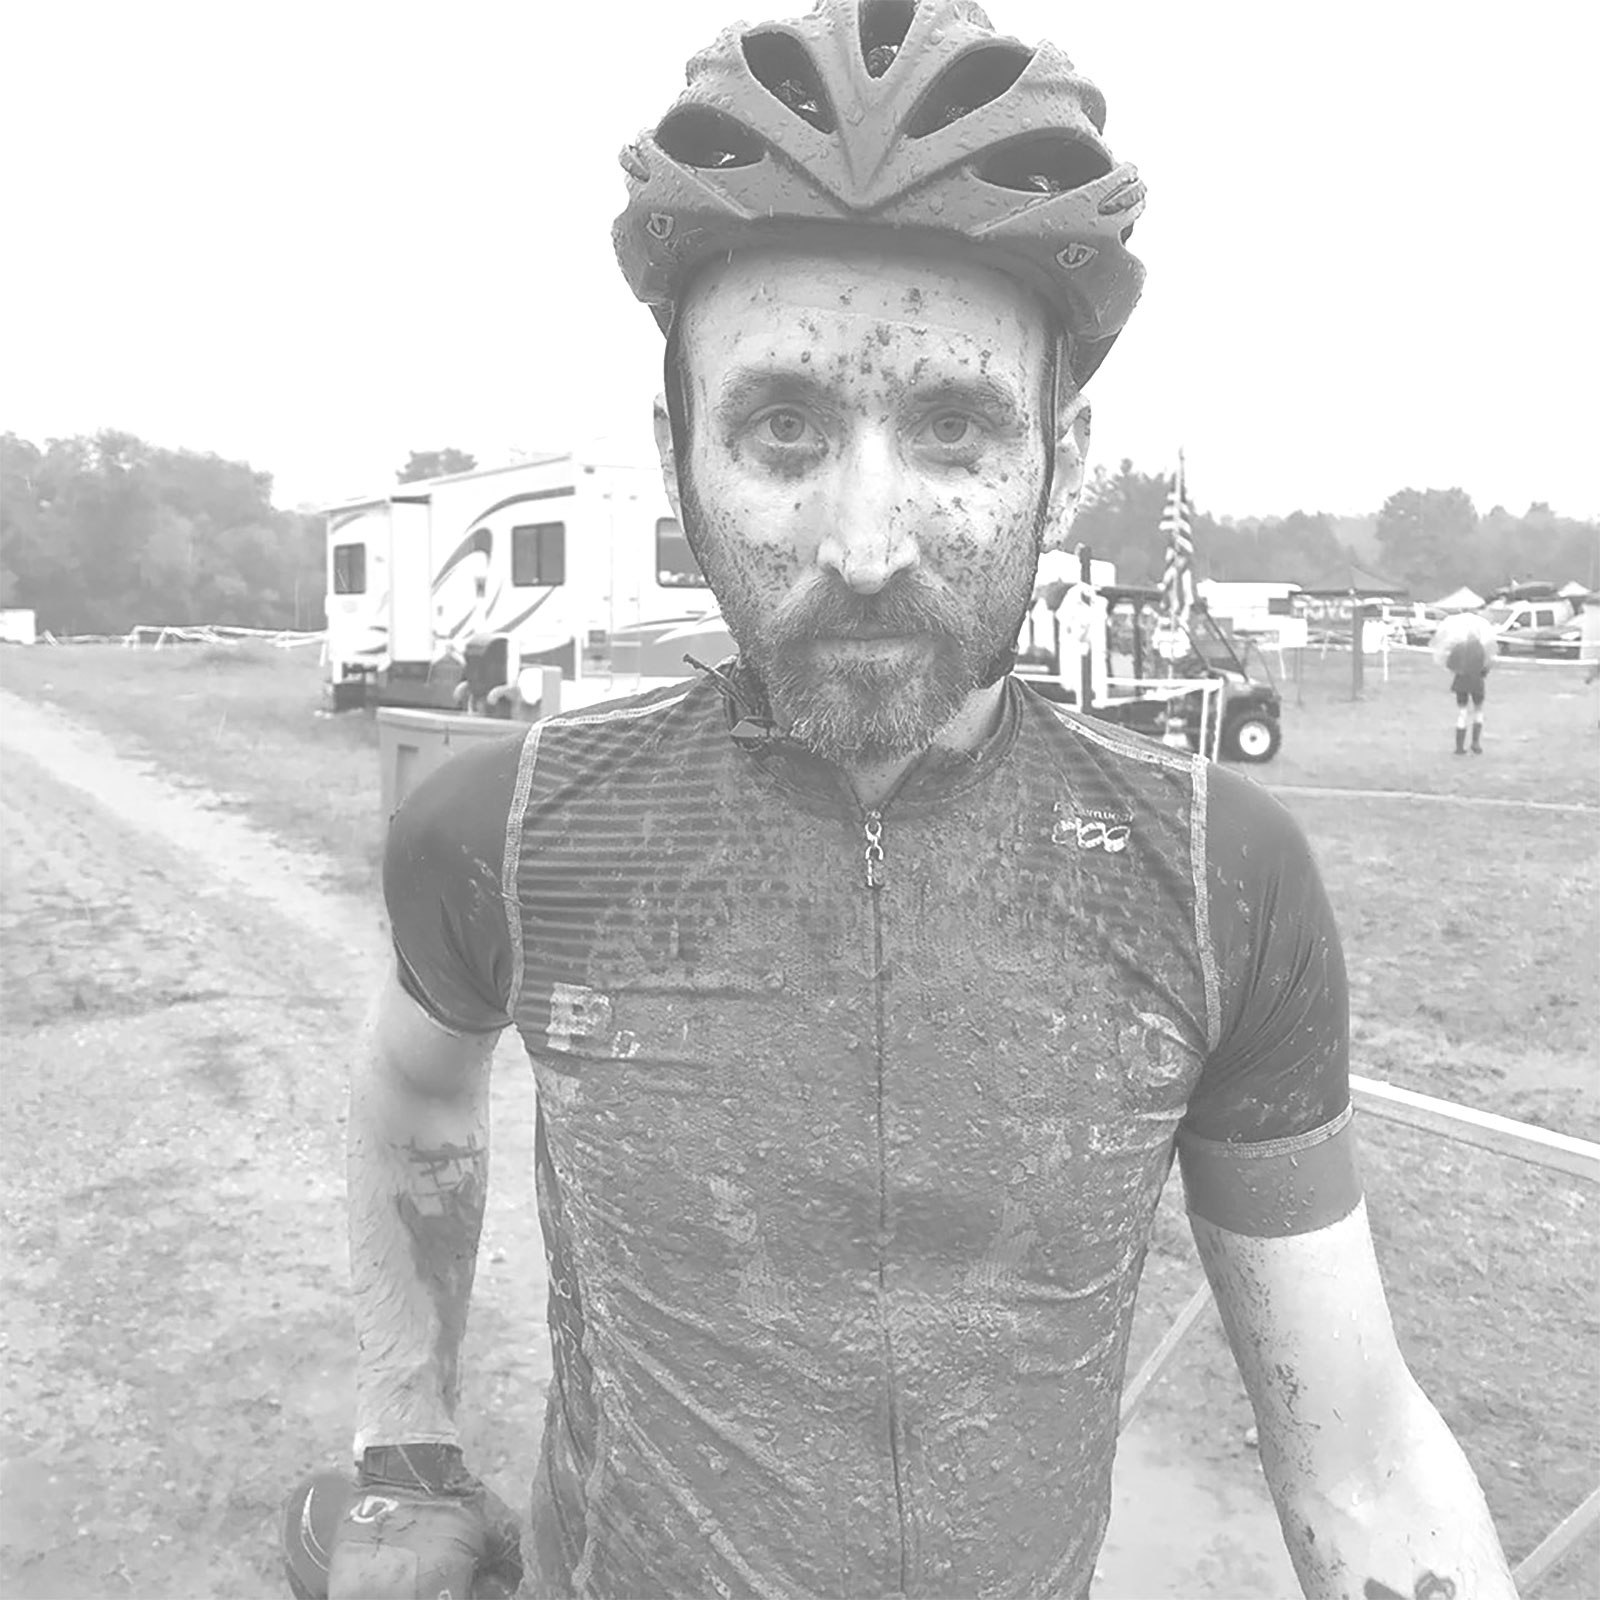 Jason after his cyclocross ride at Trek CX Cup in 2019